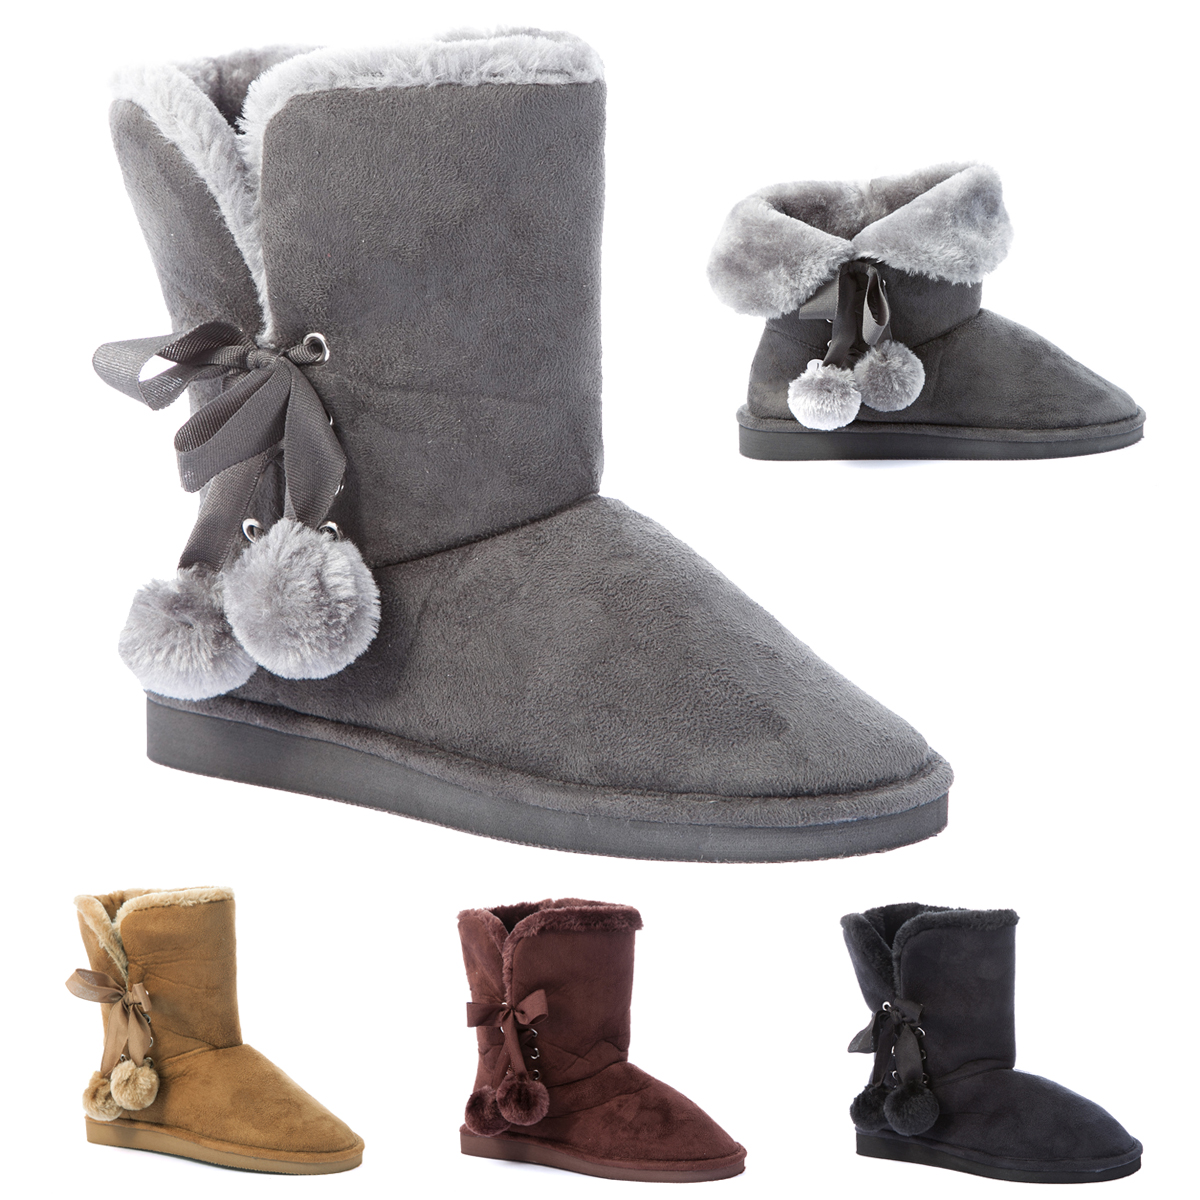 Size 13 Girls Boots with FREE Shipping & Exchanges, and a % price guarantee. Choose from a huge selection of Size 13 Girls Boots styles.